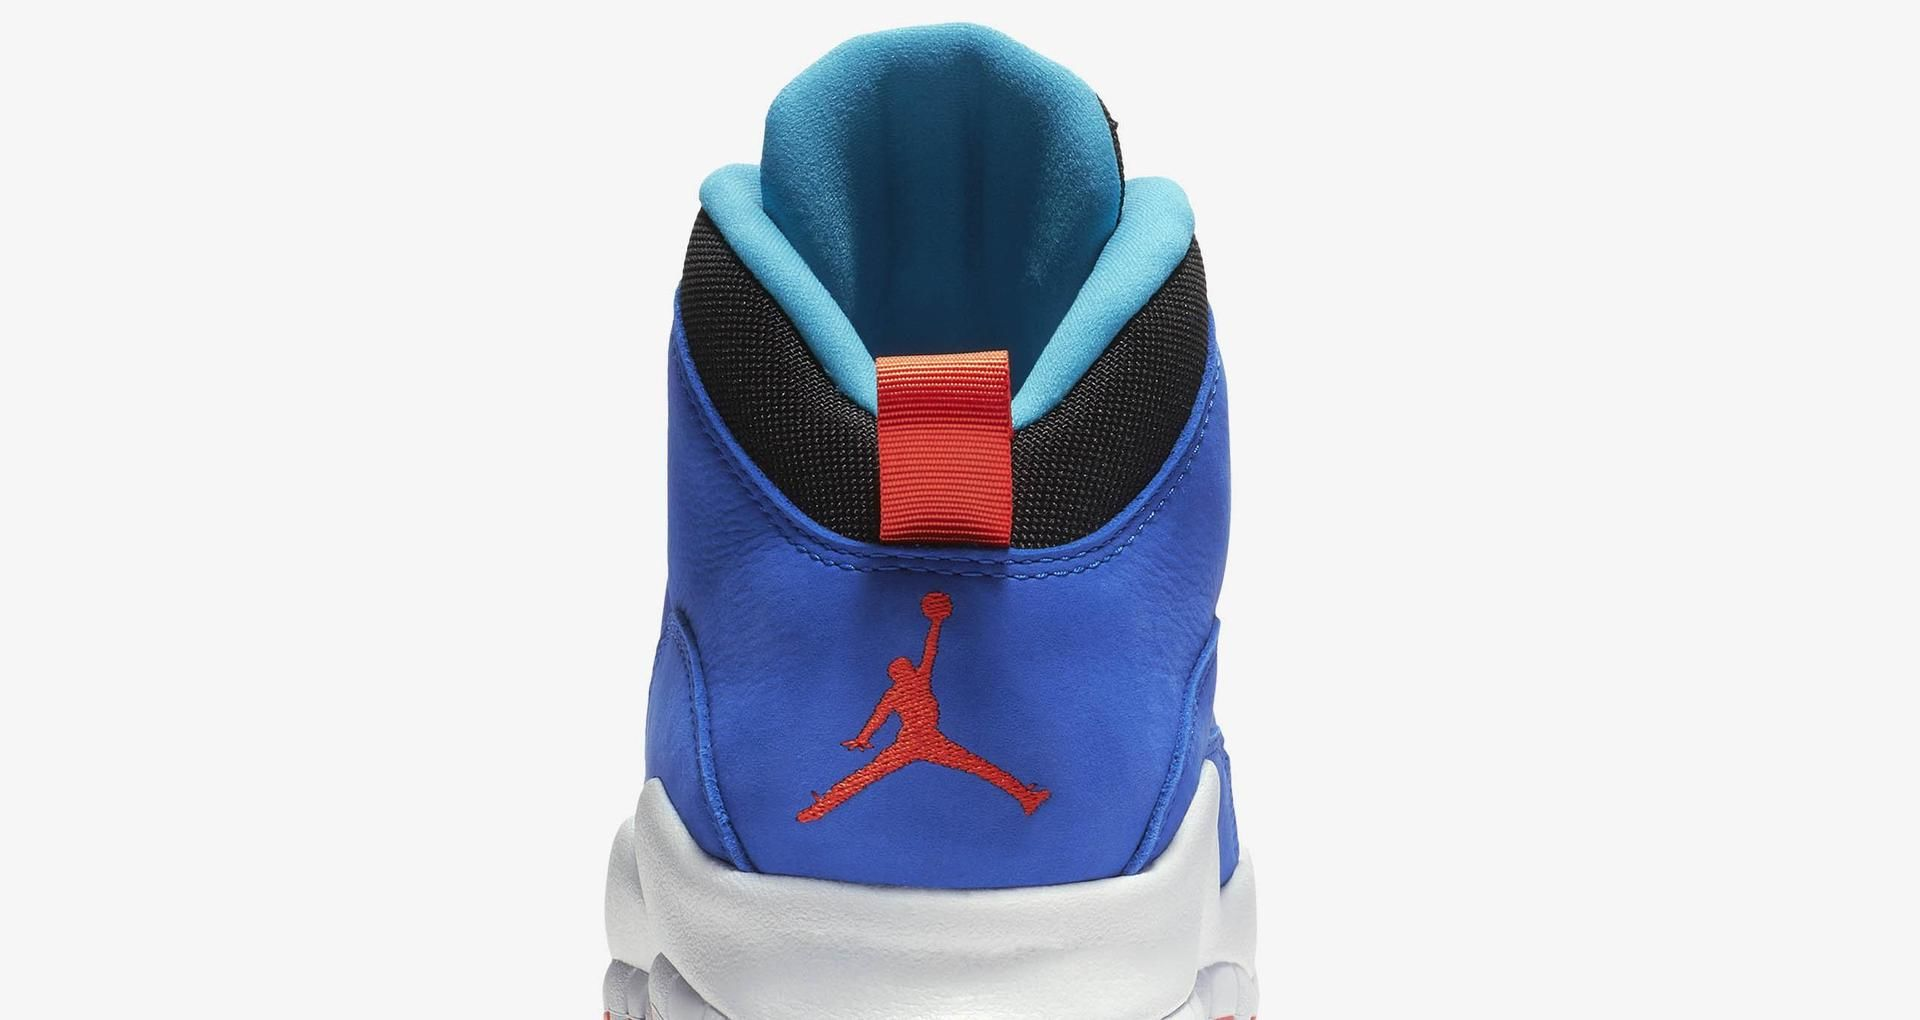 lowest price f8a35 5fef9 Air Jordan 10 Retro Tinker 'Air Huarache Light' Release Date ...